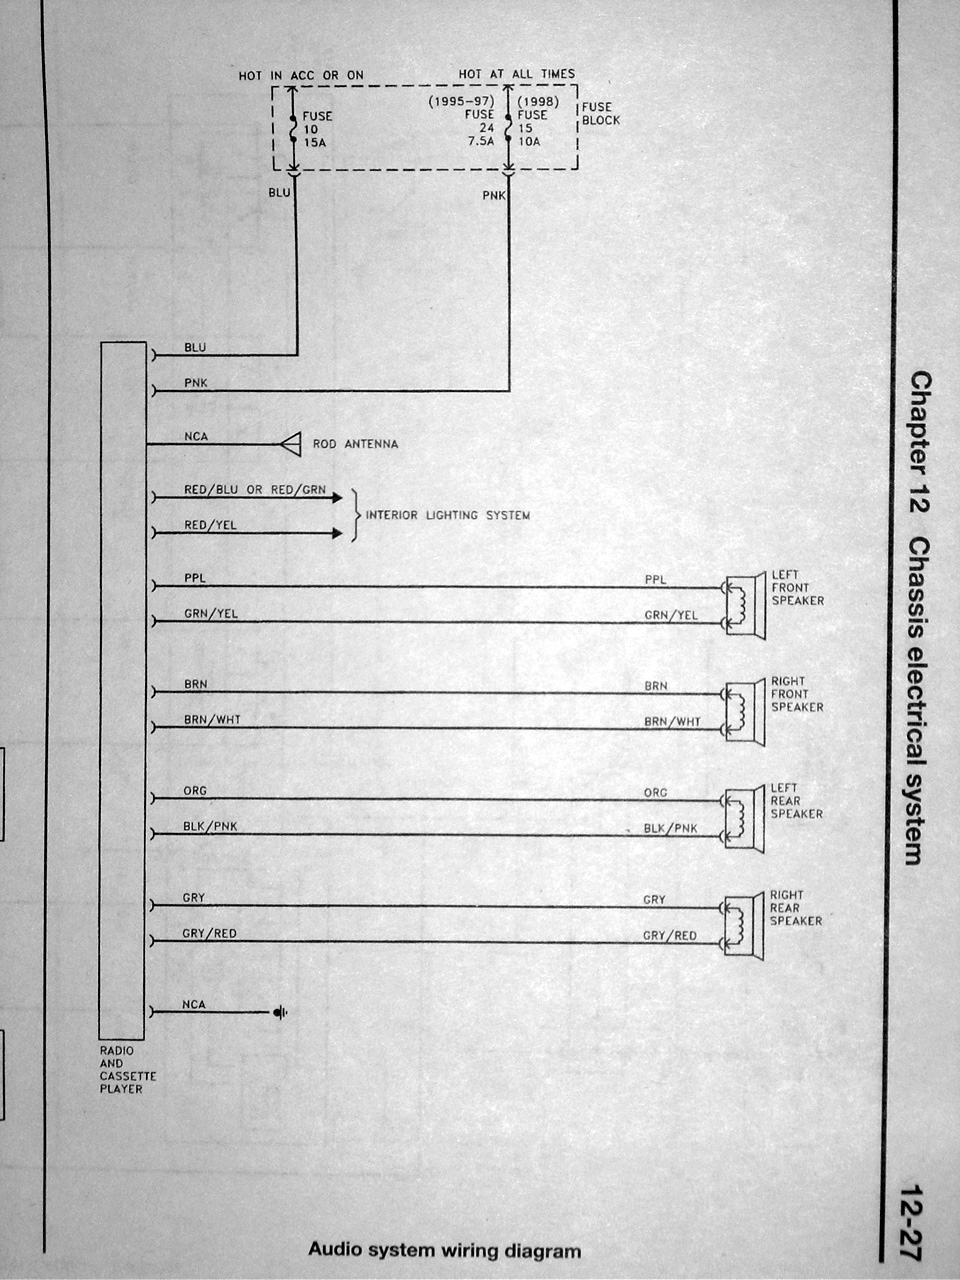 DSC01849 wiring diagram thread *useful info* nissan forum 1998 nissan frontier radio wiring diagram at crackthecode.co